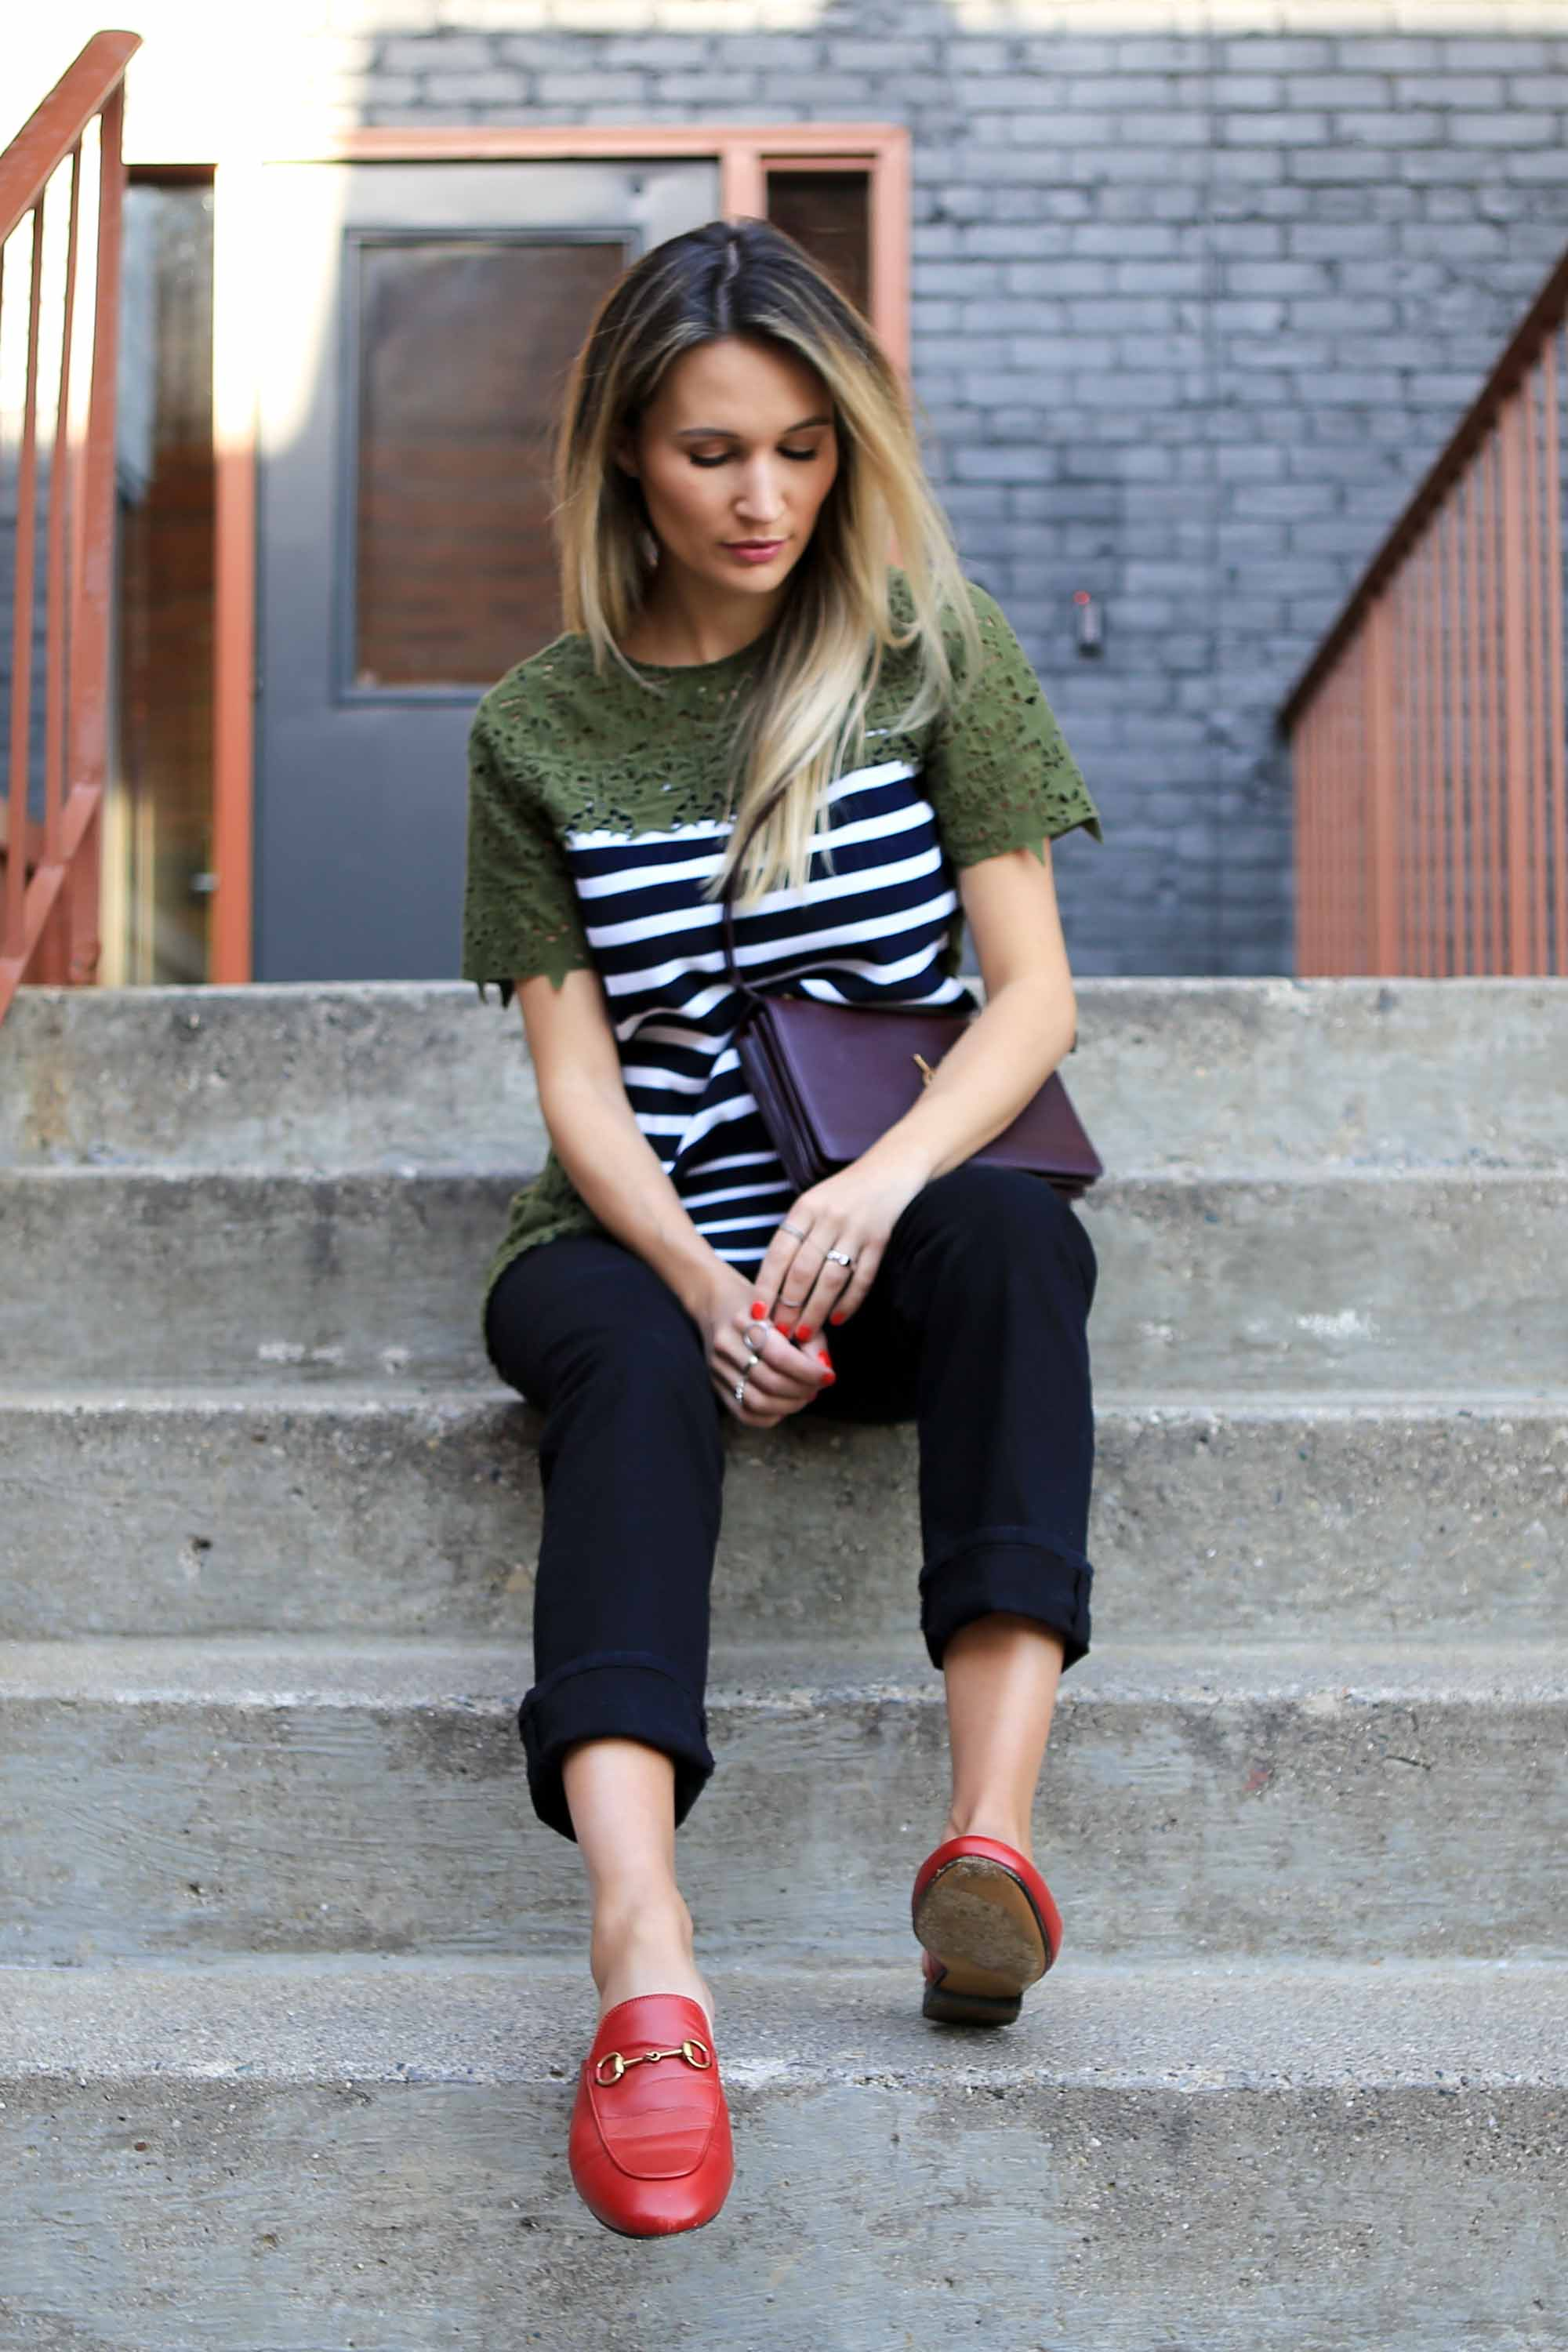 In lieu of funny phrases, I prefer mixing textures and prints - or choosing a piece that slightly tweaks the silhouette of a classic Tee with a wrap detail or an unexpected ruffle on the sleeves.